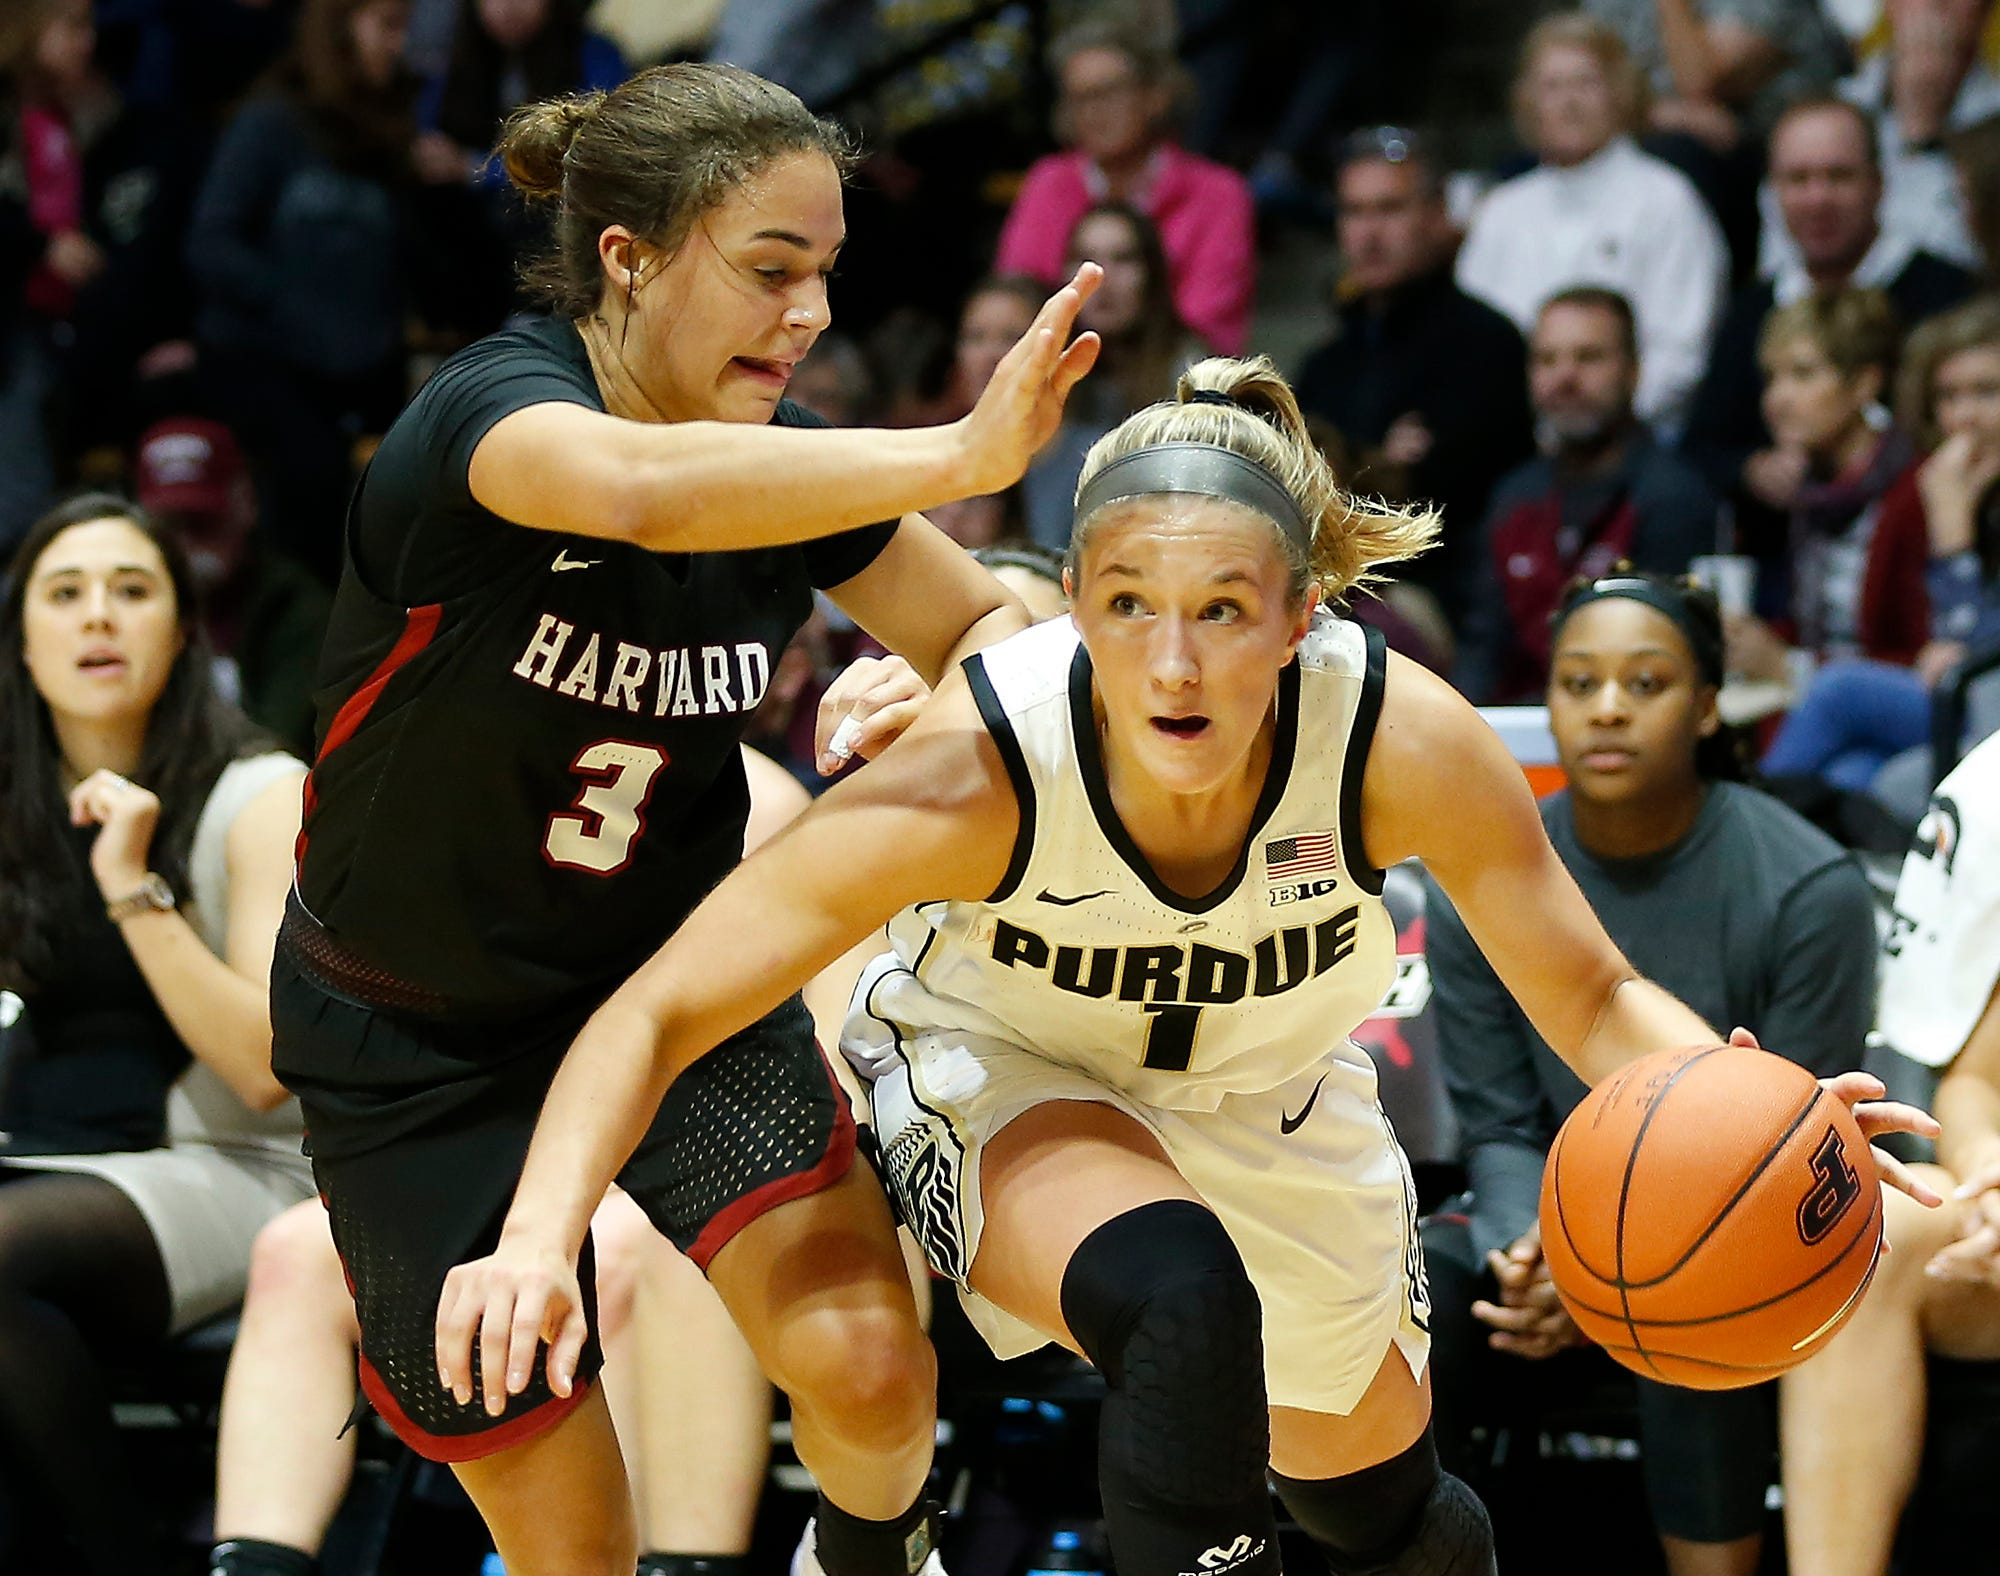 Purdue guard Karissa McLauglin slips beneath Katie Benzan of Harvard on a drive along the baseline.